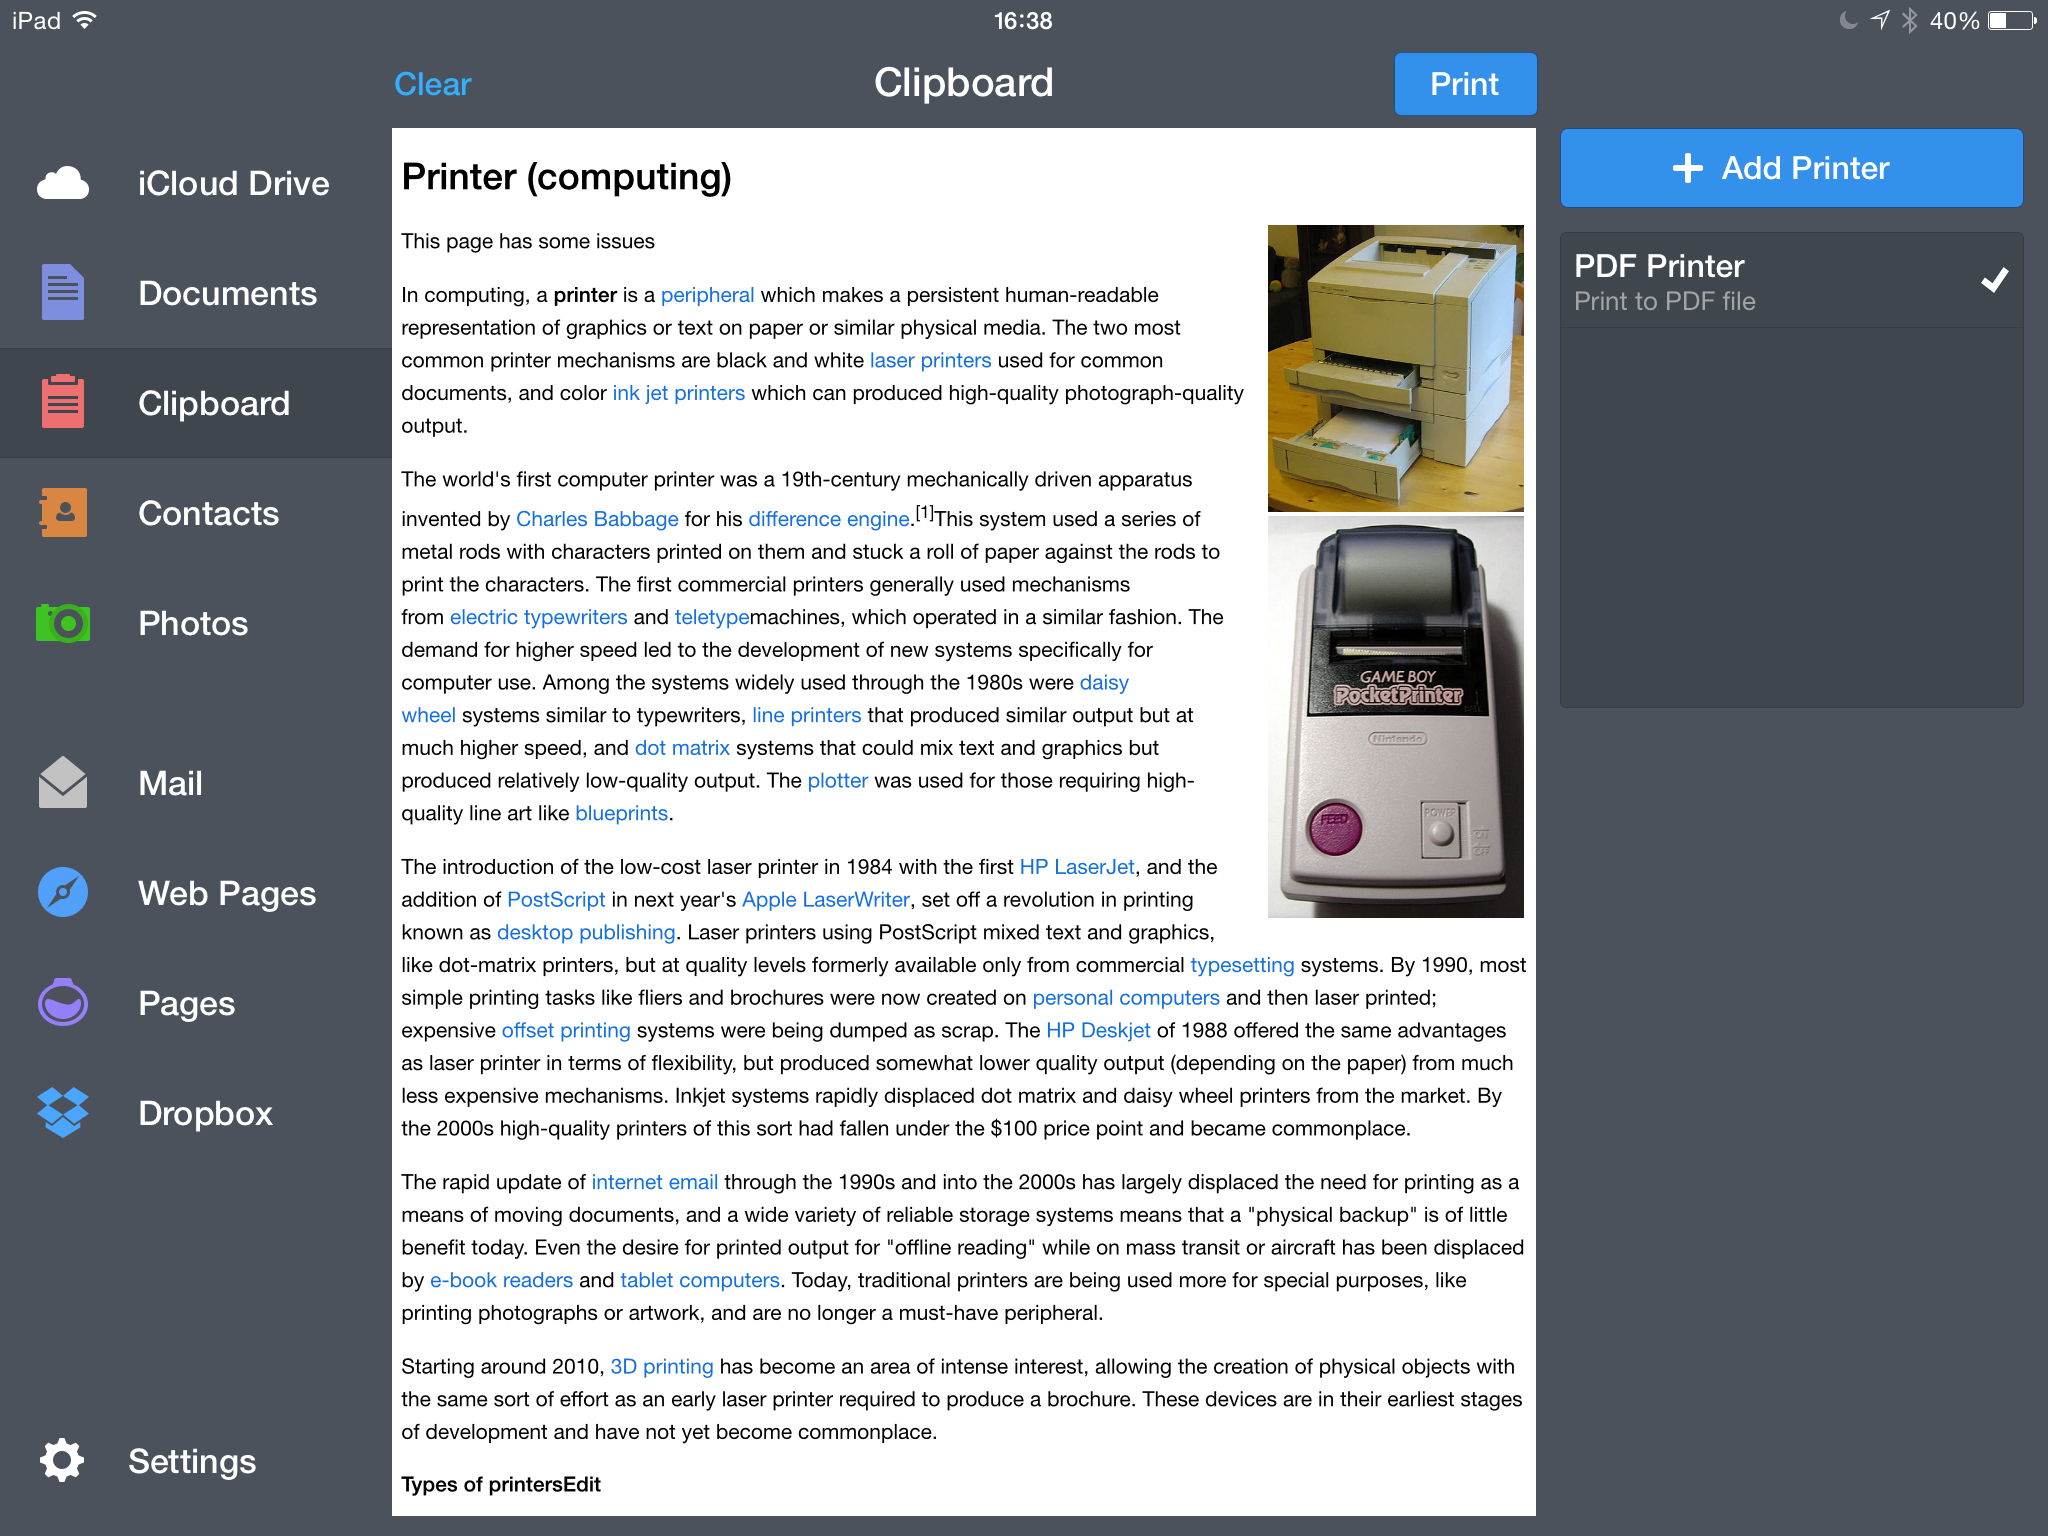 How to print Safari web pages without clutter - Readdle